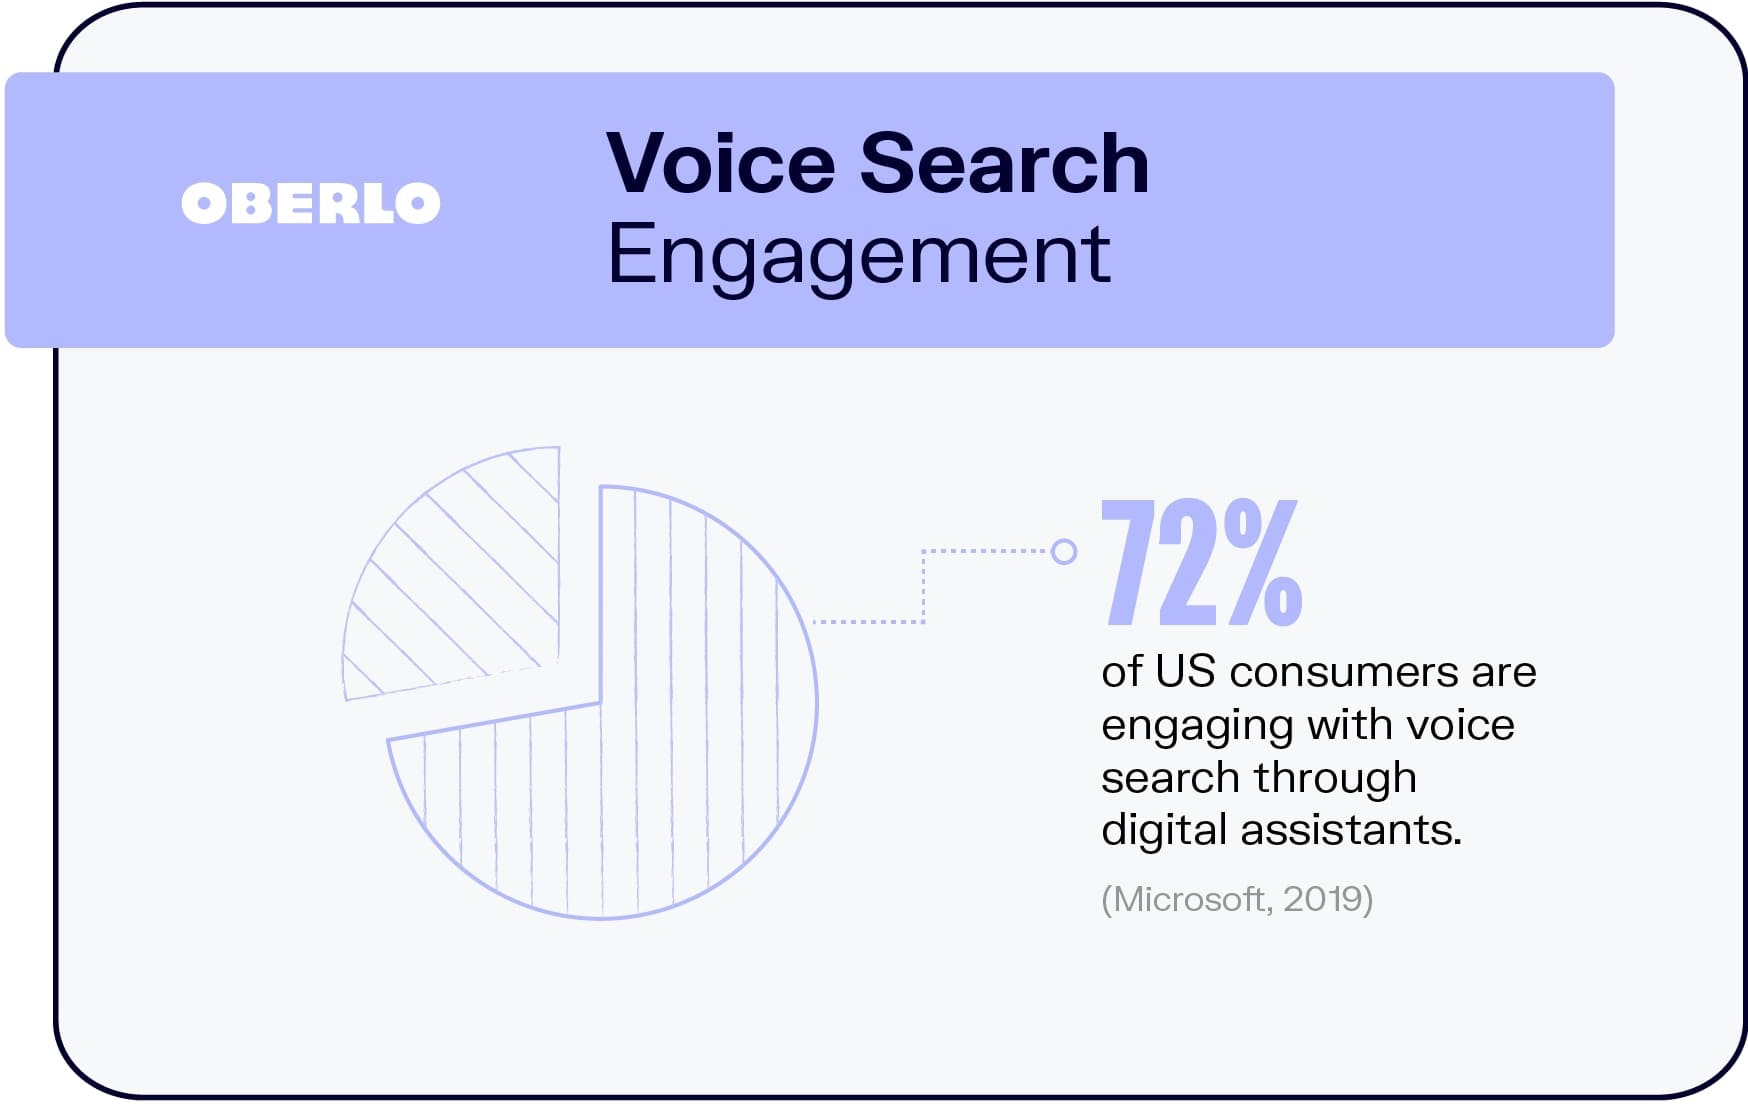 Voice Search Engagement